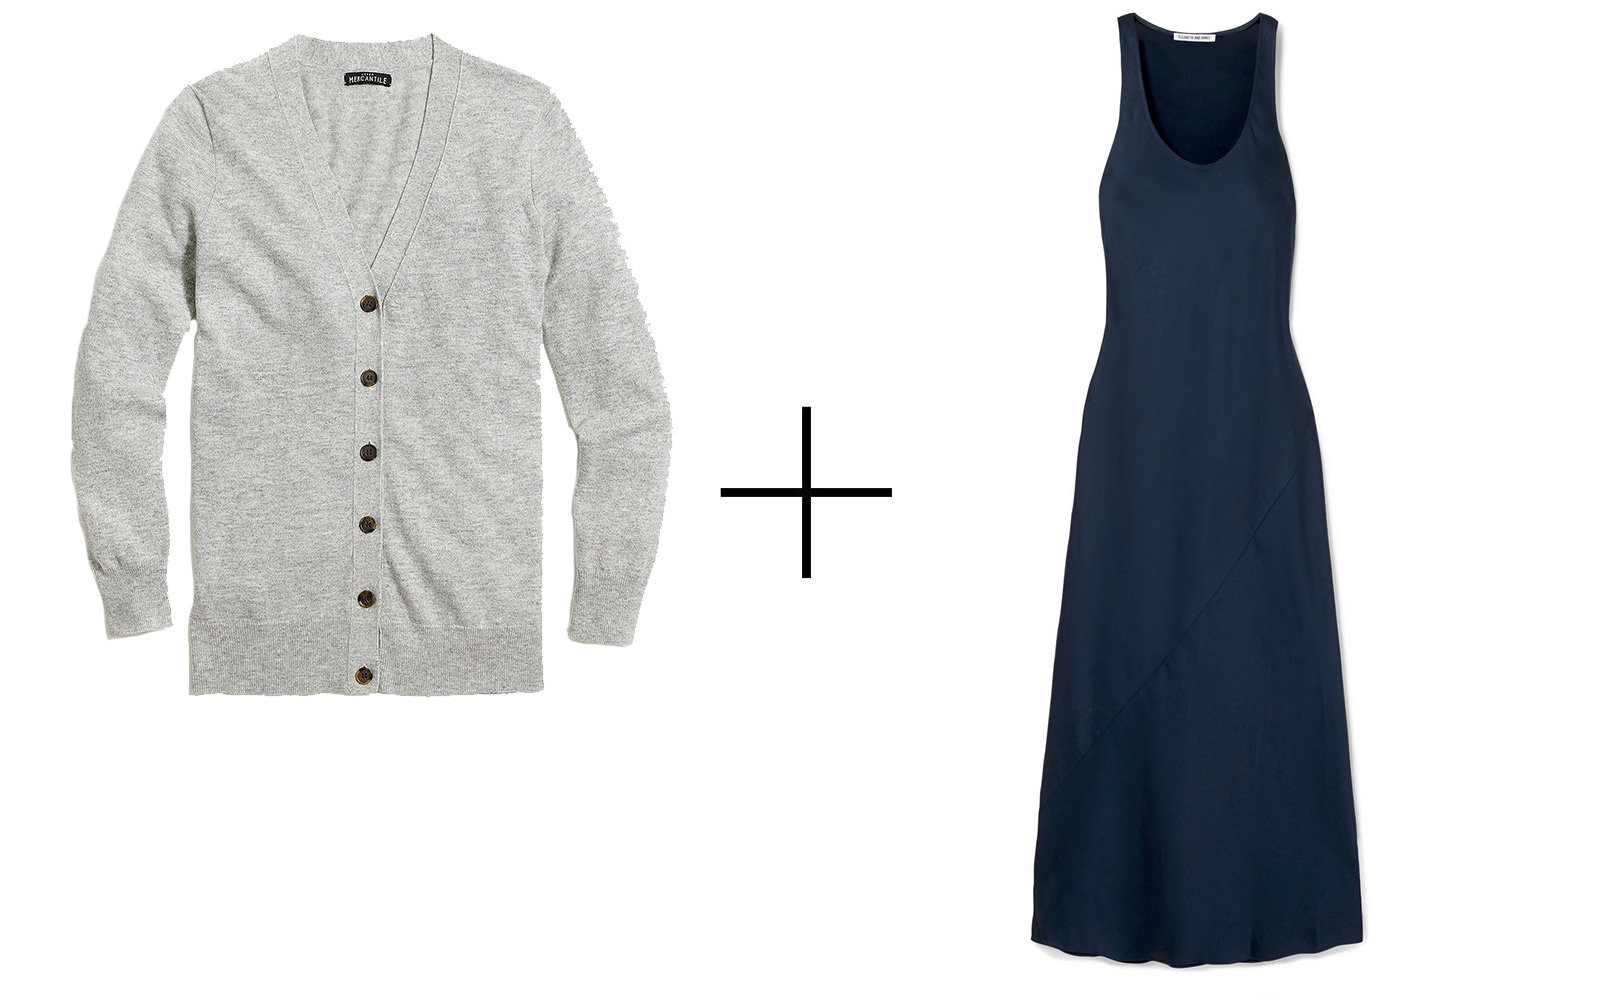 J.Crew Mercantile V-neck Cardigan + Elizabeth + James 'Malta' Satin-crepe Maxi Dress